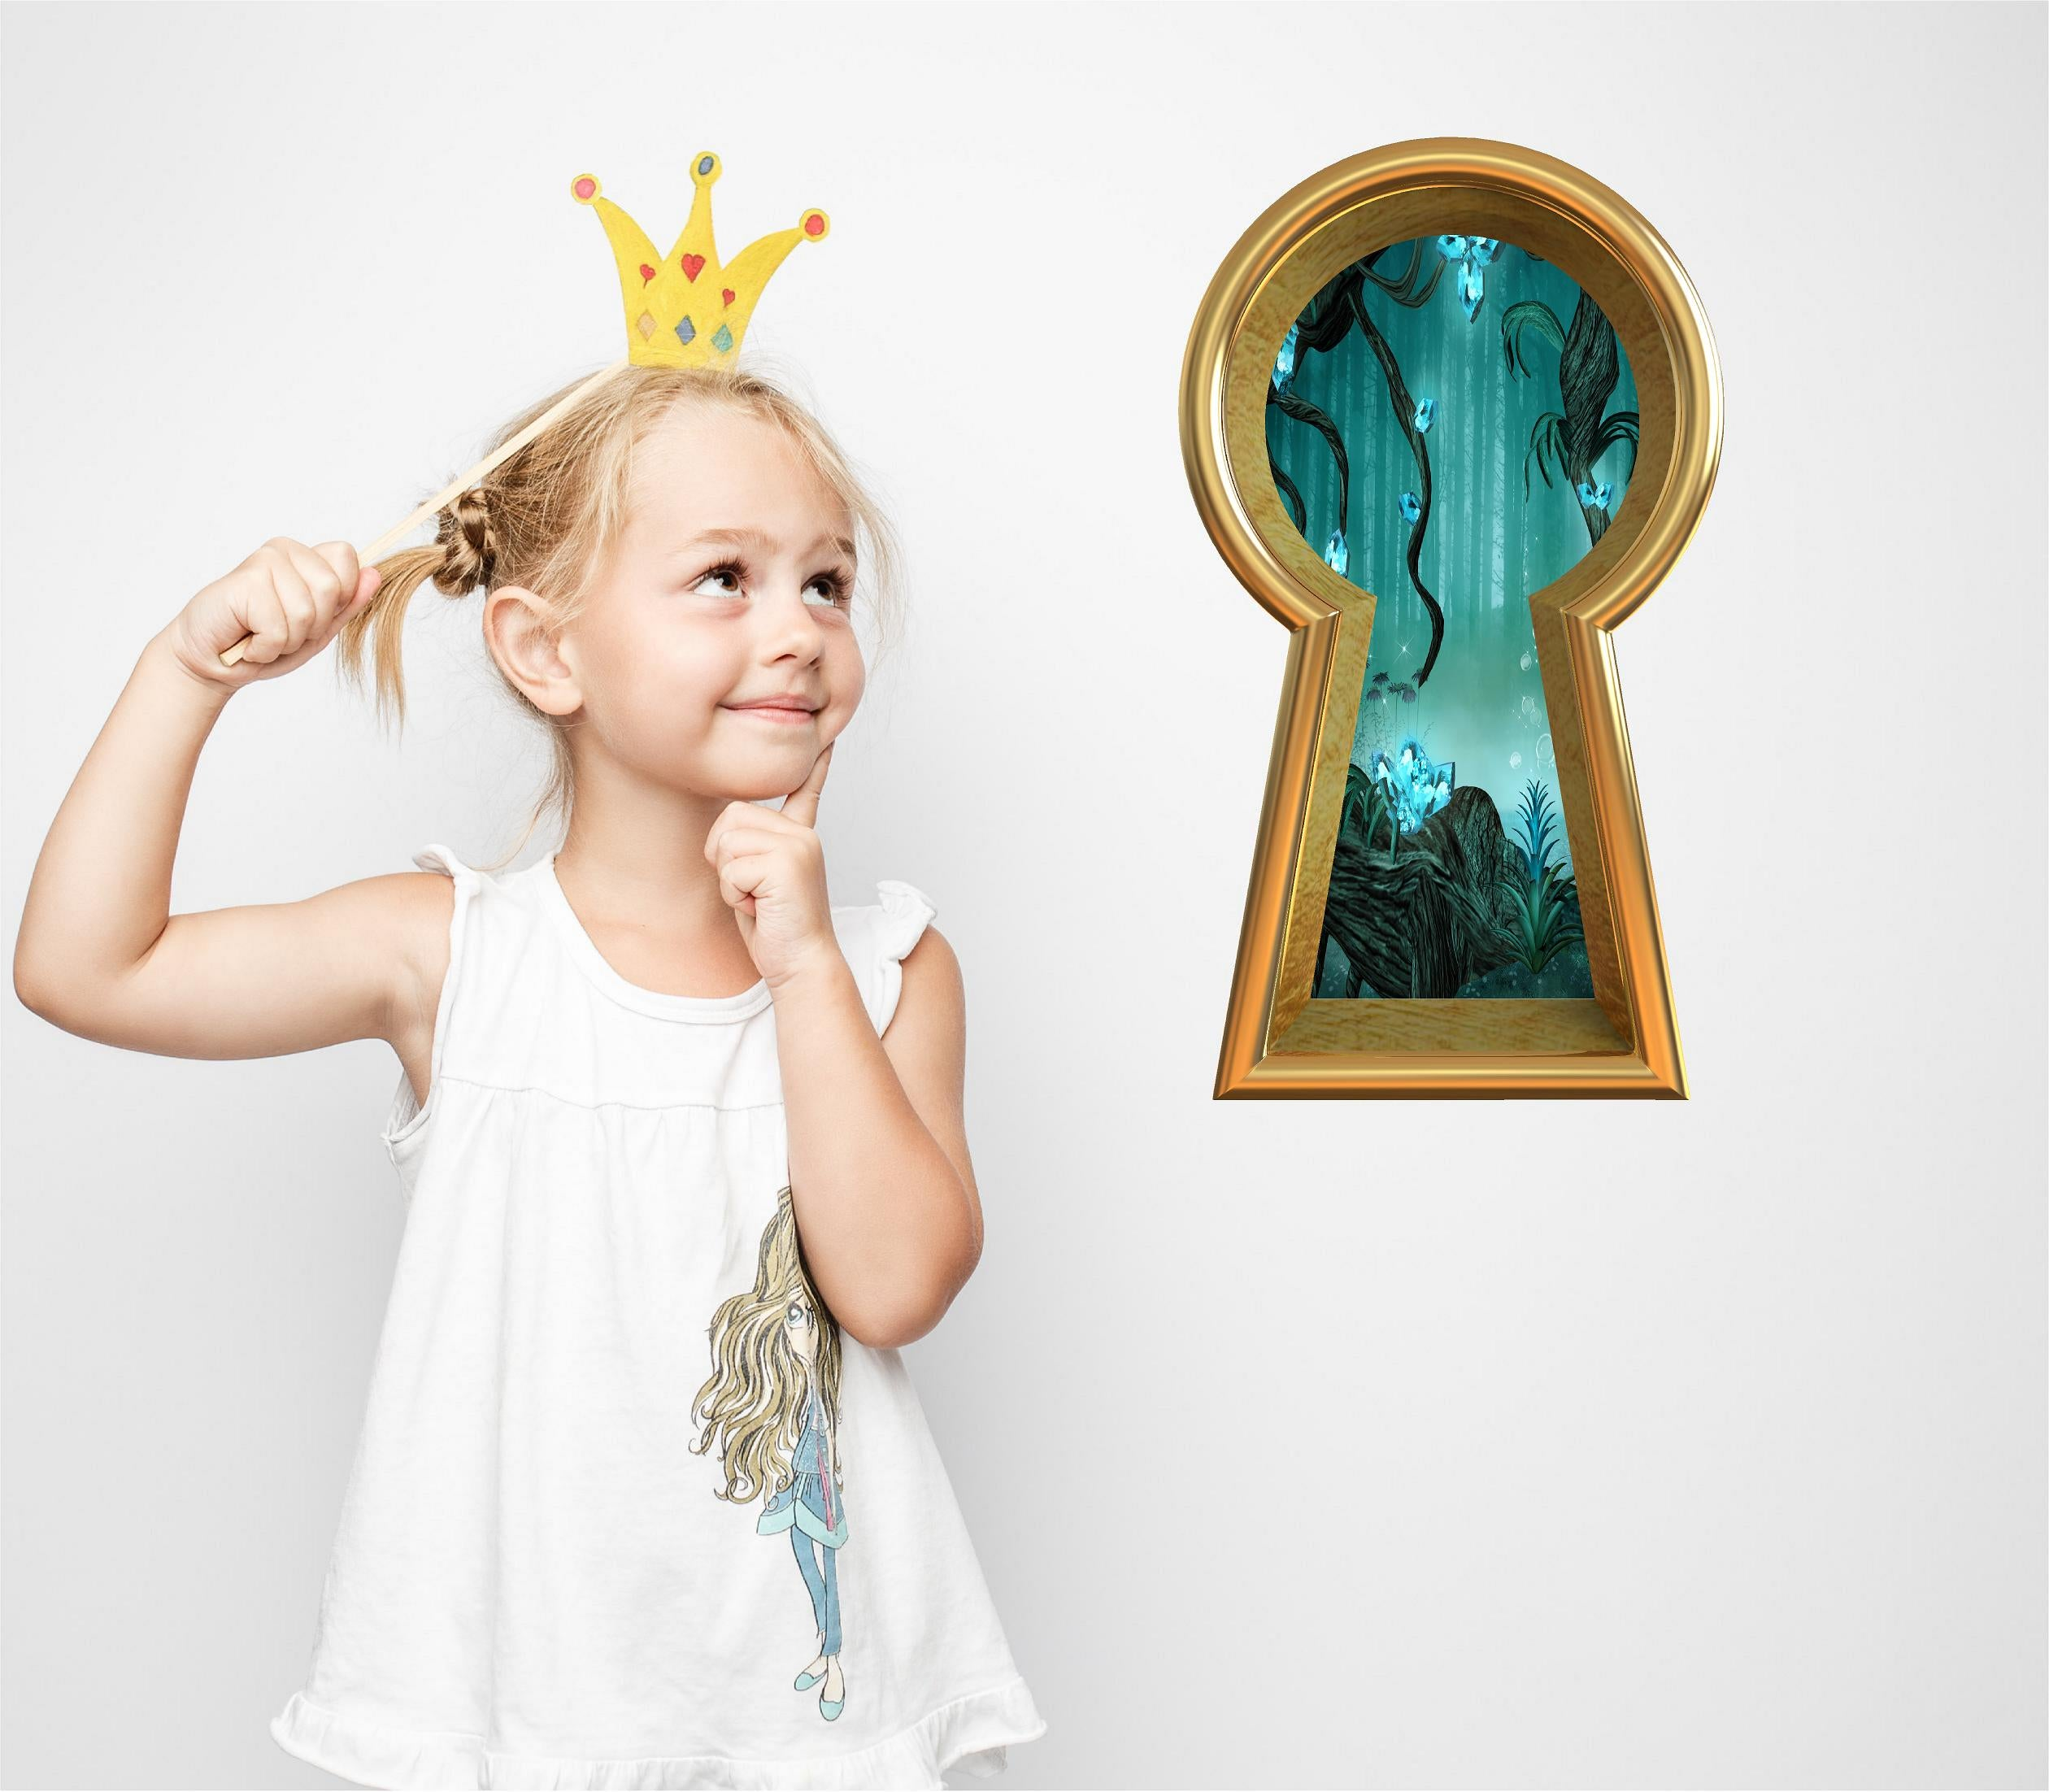 3D Keyhole Wall Decal Enchanted Crystal Forest Fantasy Wall Art Removable Wall Sticker